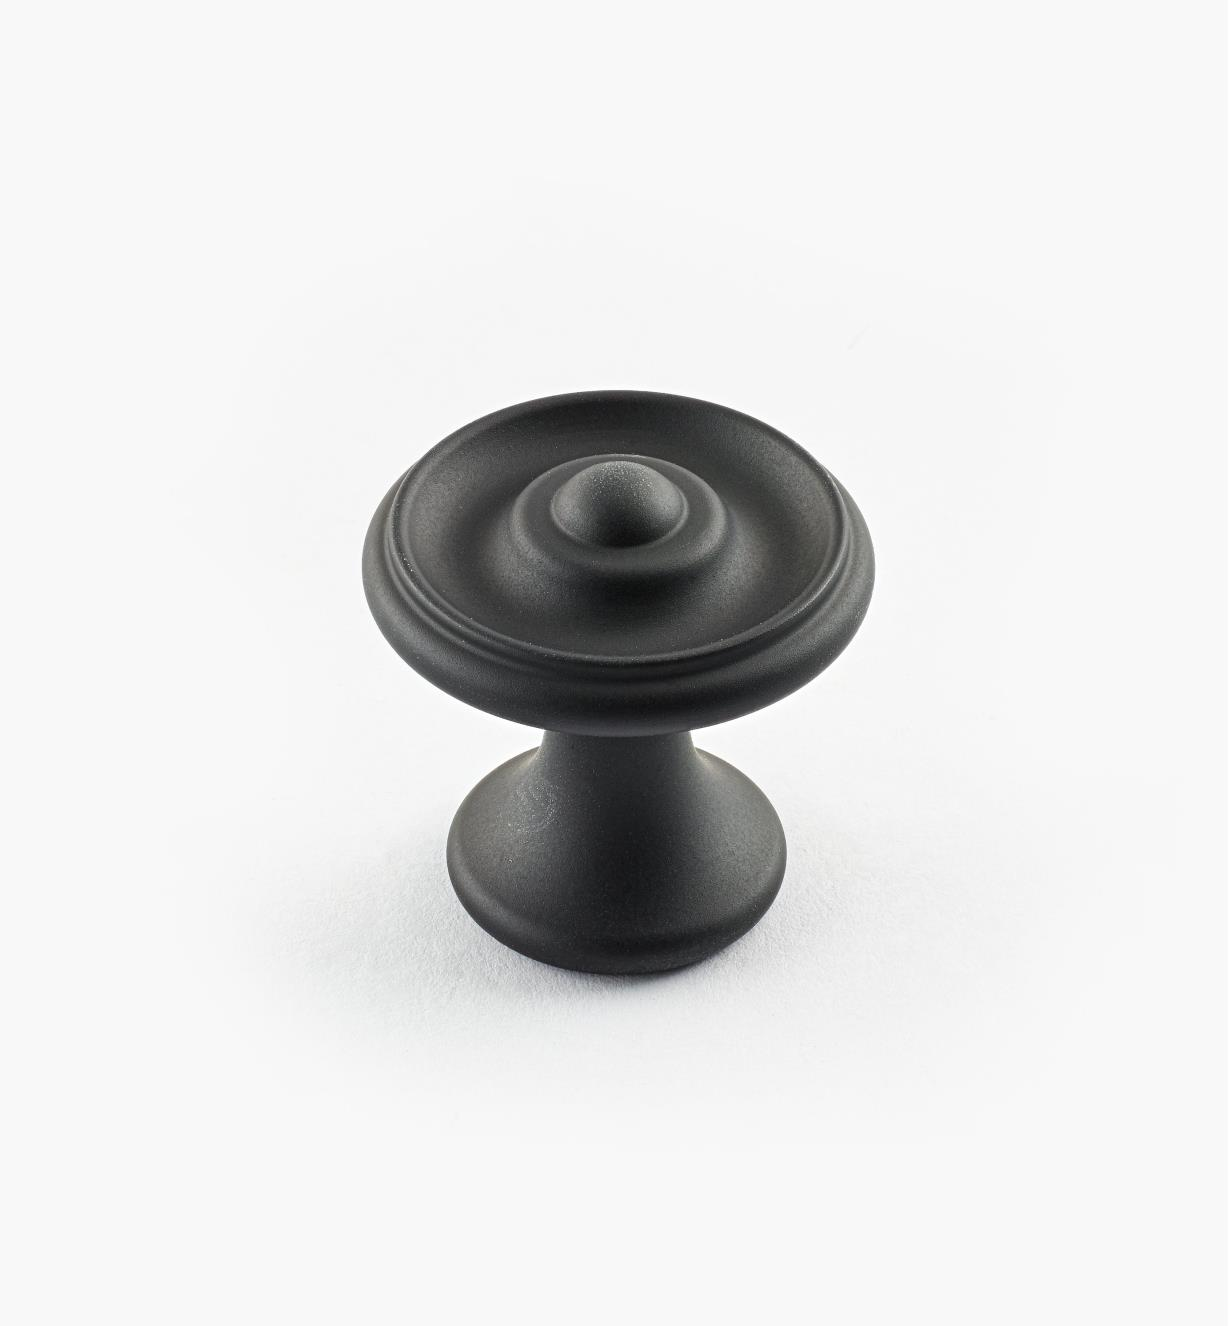 "02W3241 - Oil-Rubbed Bronze Suite - 1 1/8"" x 1 1/8"" Turned Brass Raised Knob"